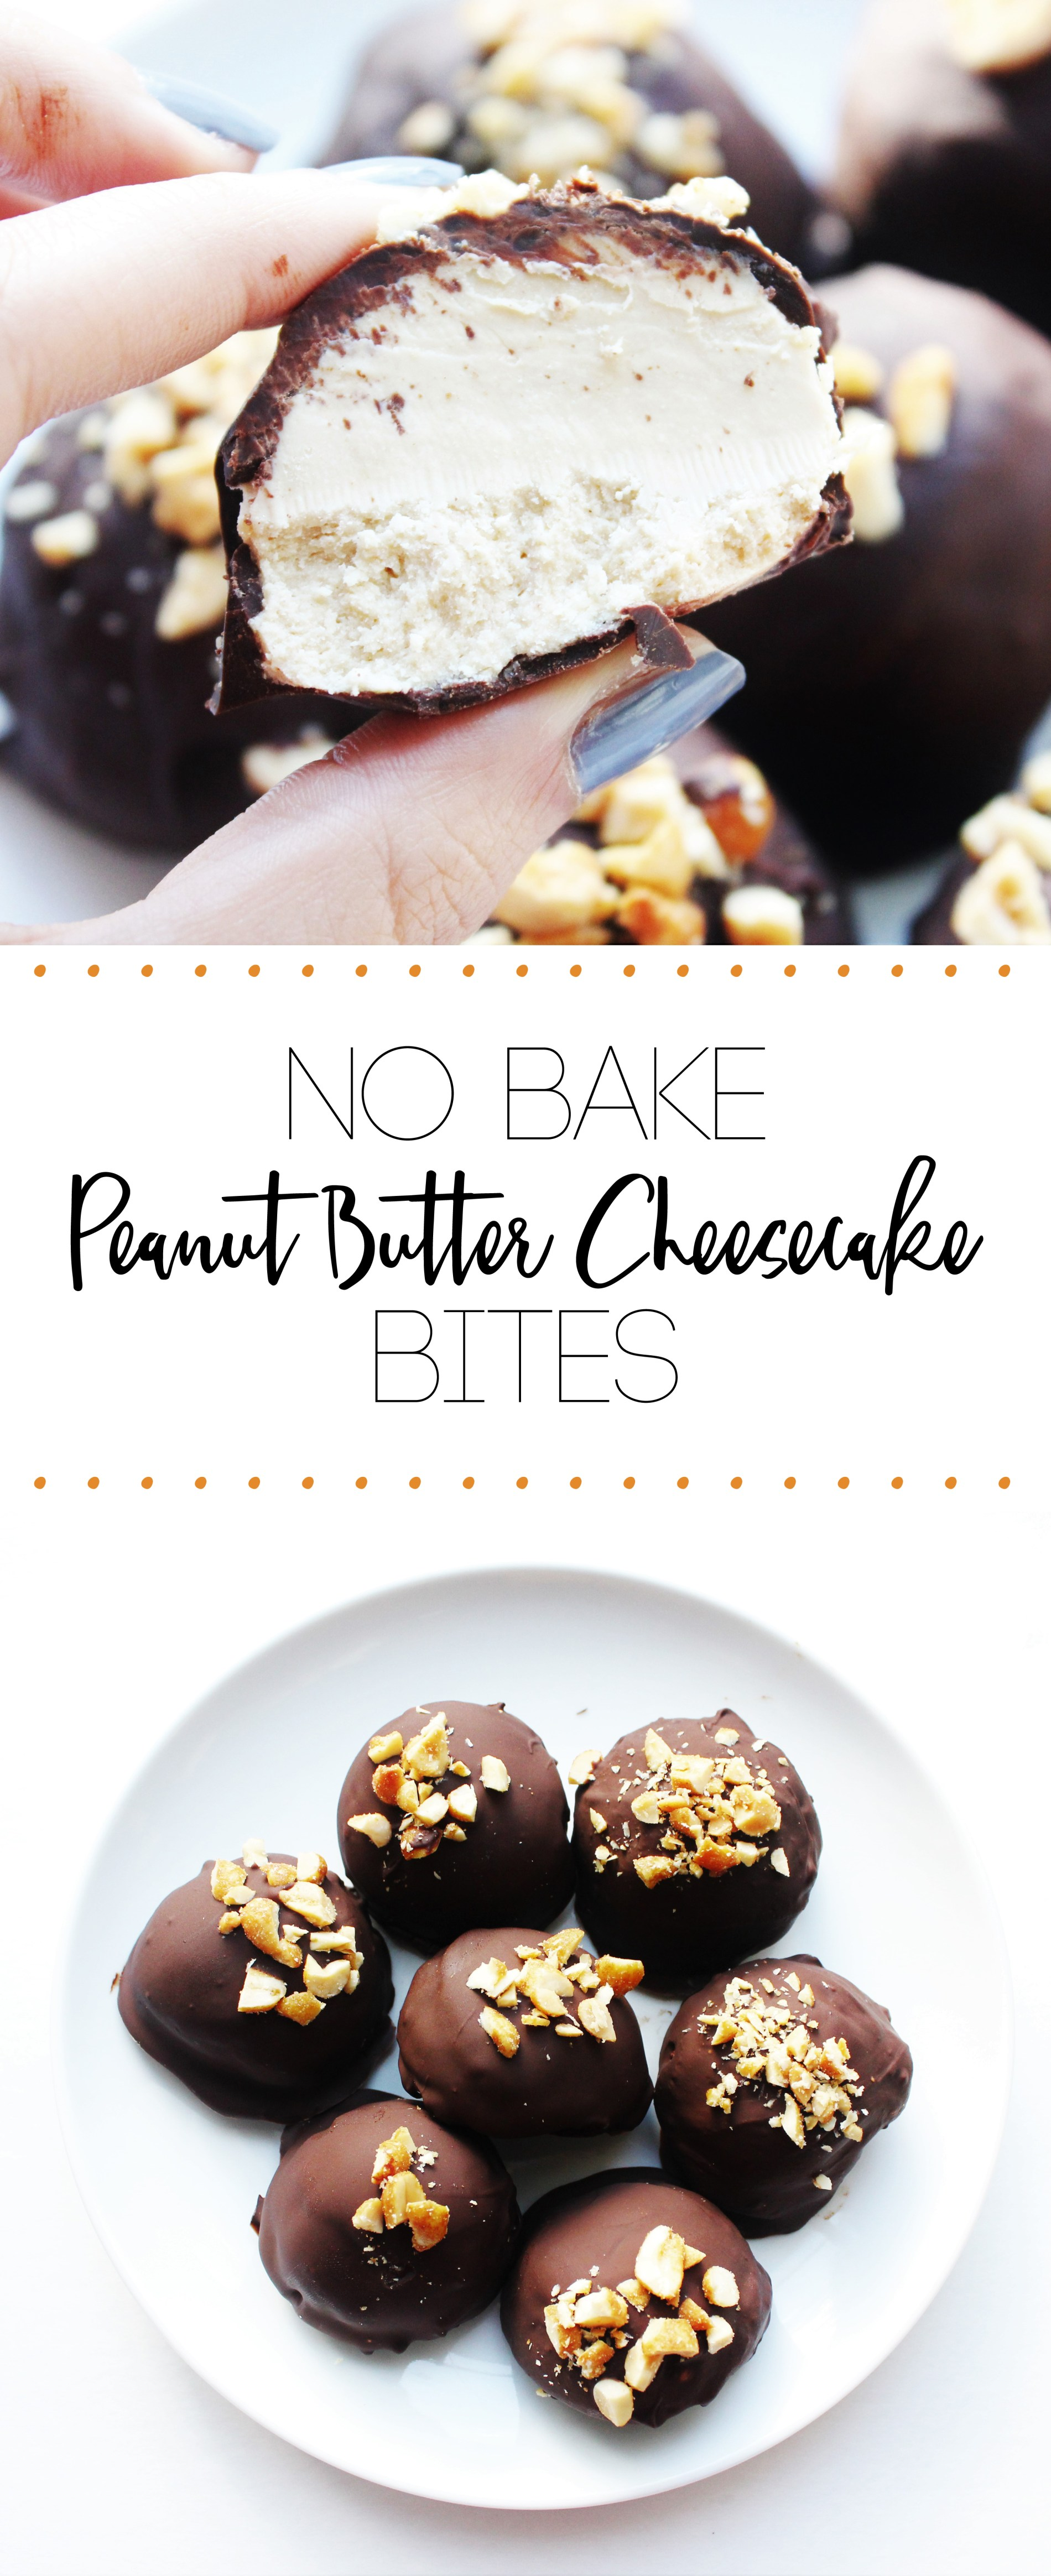 Peanut Butter Cheesecake Bites- No bake, 5 ingredients dessert, perfect chocolaty and peanut butter treat.